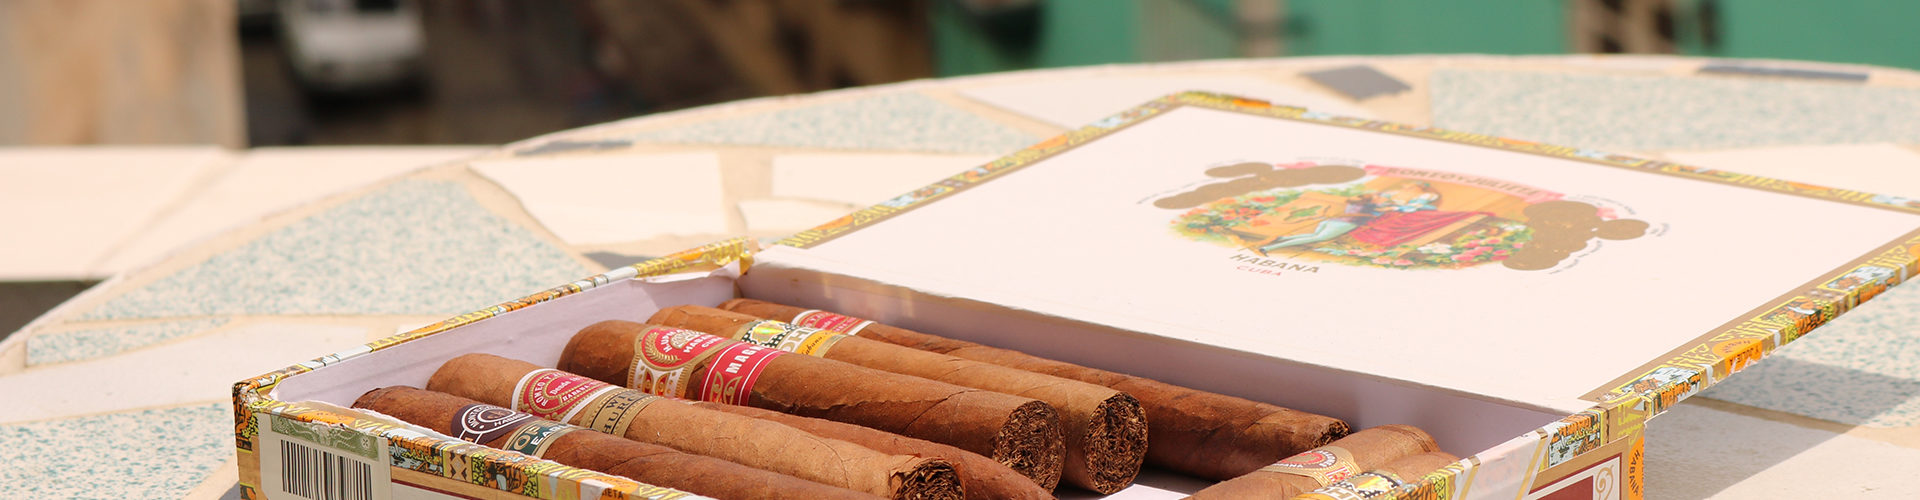 how to store cigars